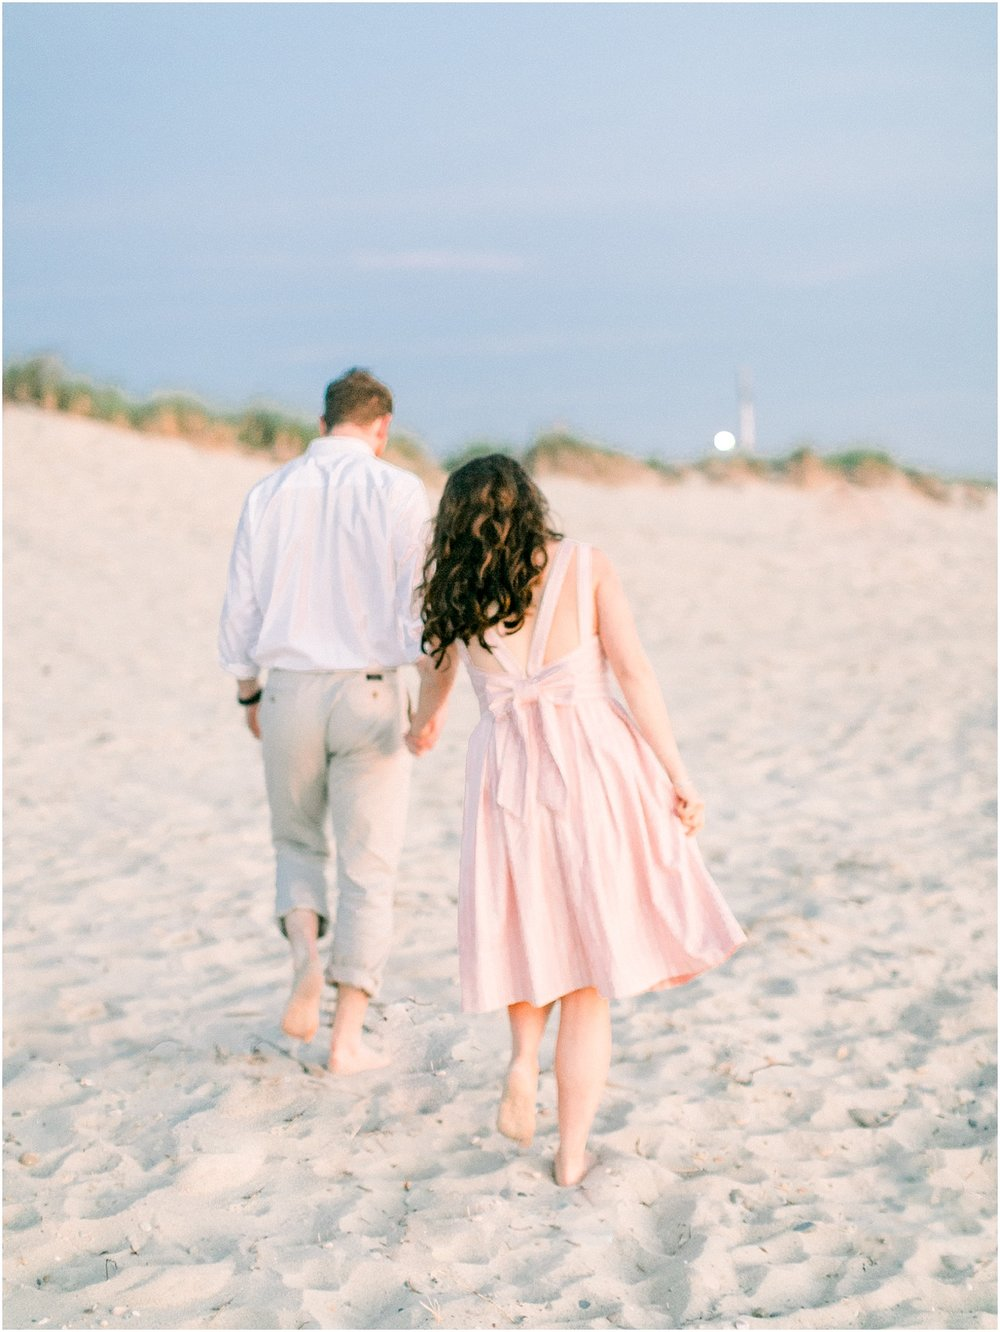 love_and_light_photographs_meredith_chris_engagement_martha_vineyard_marthas_nancys_cape_cod_boston_wedding_photographer_meredith_jane_photography_photo_0465.jpg